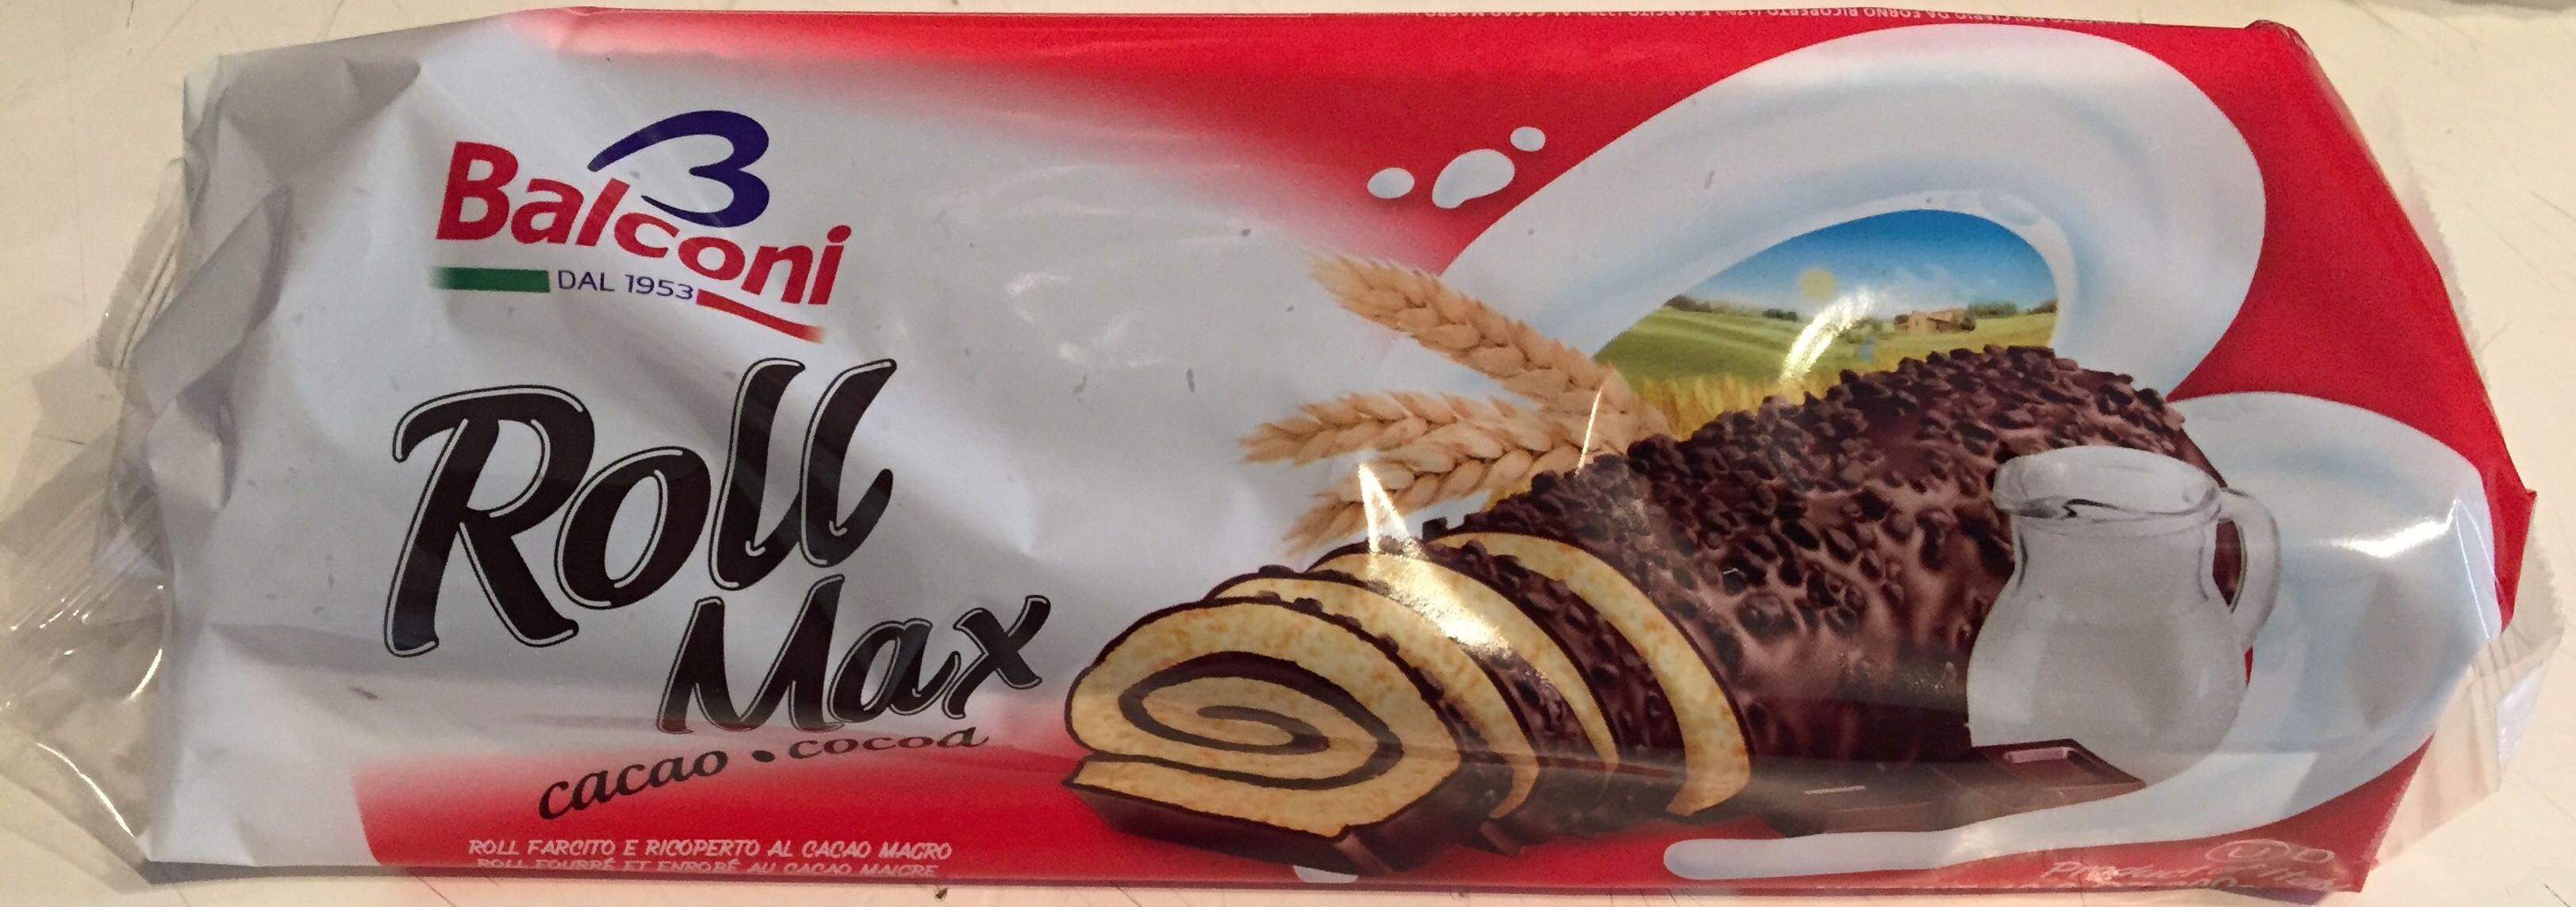 Roll Max Cacao - Product